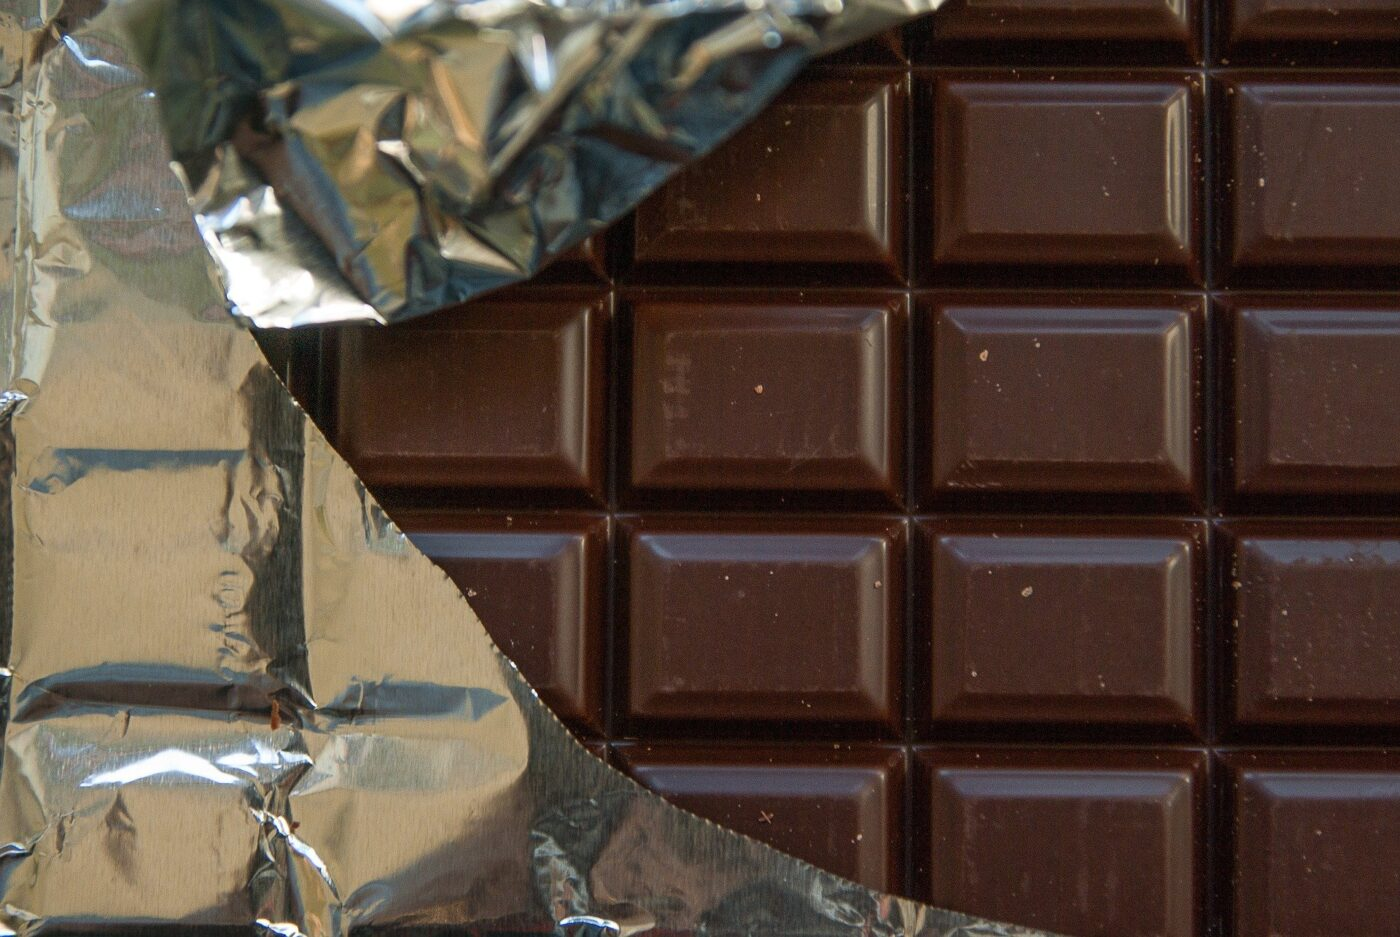 Does dark chocolate have less sugar?